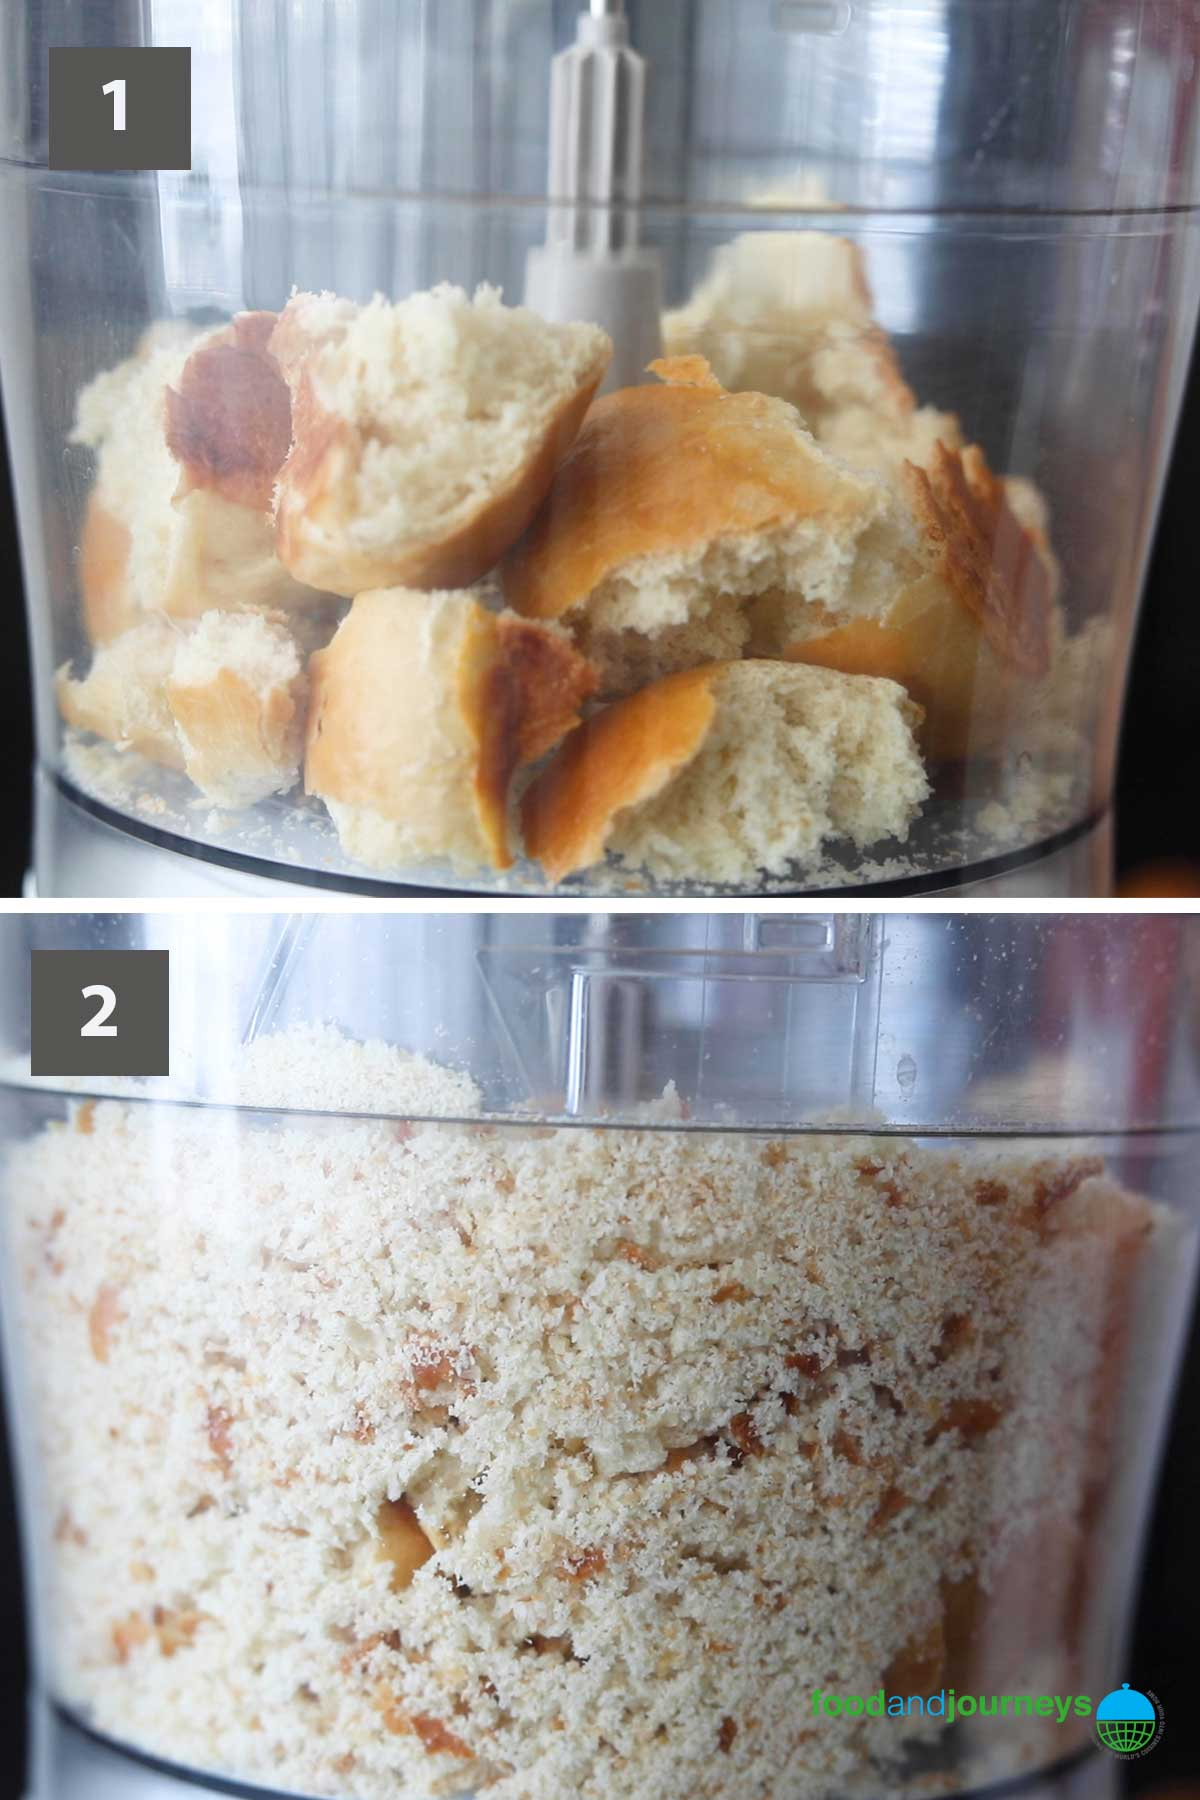 First part of a collage of images showing the step by step process on making your own breadcrumbs.